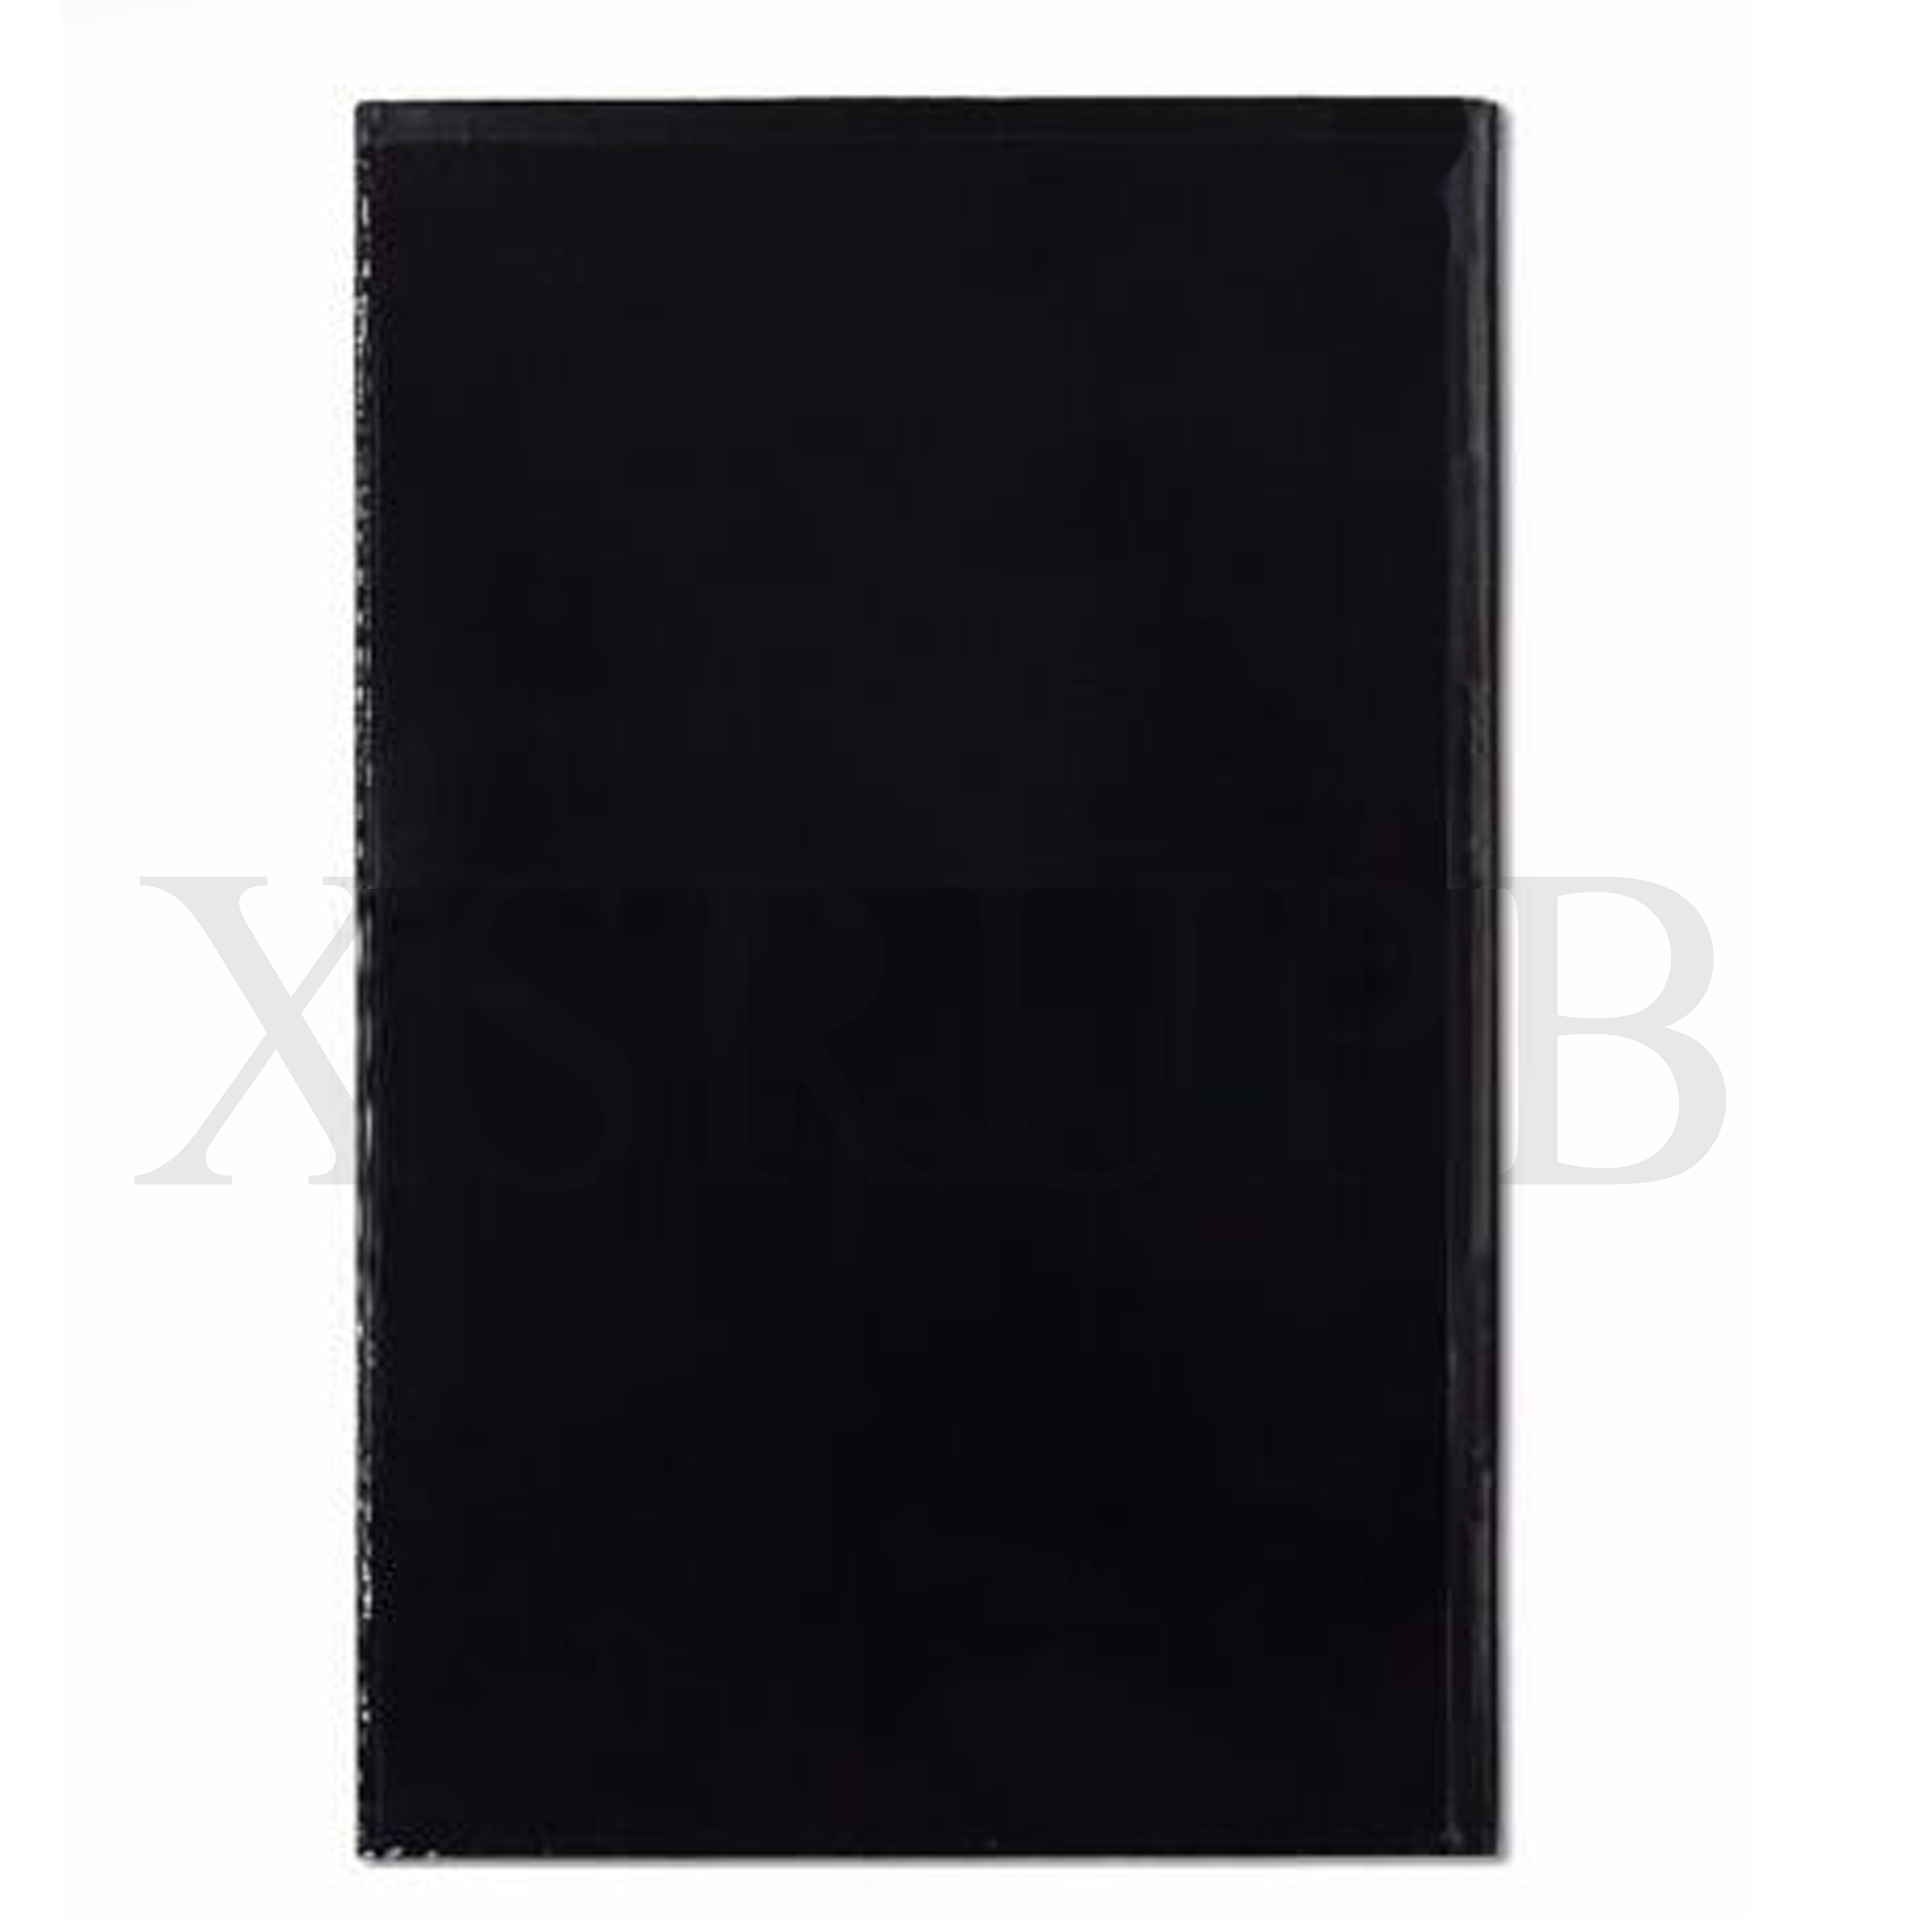 New 8 inch for TRUST 1213-0800083  3024-0800083 T080UWXC15T Tablet pc LCD Screen Free shipping<br>